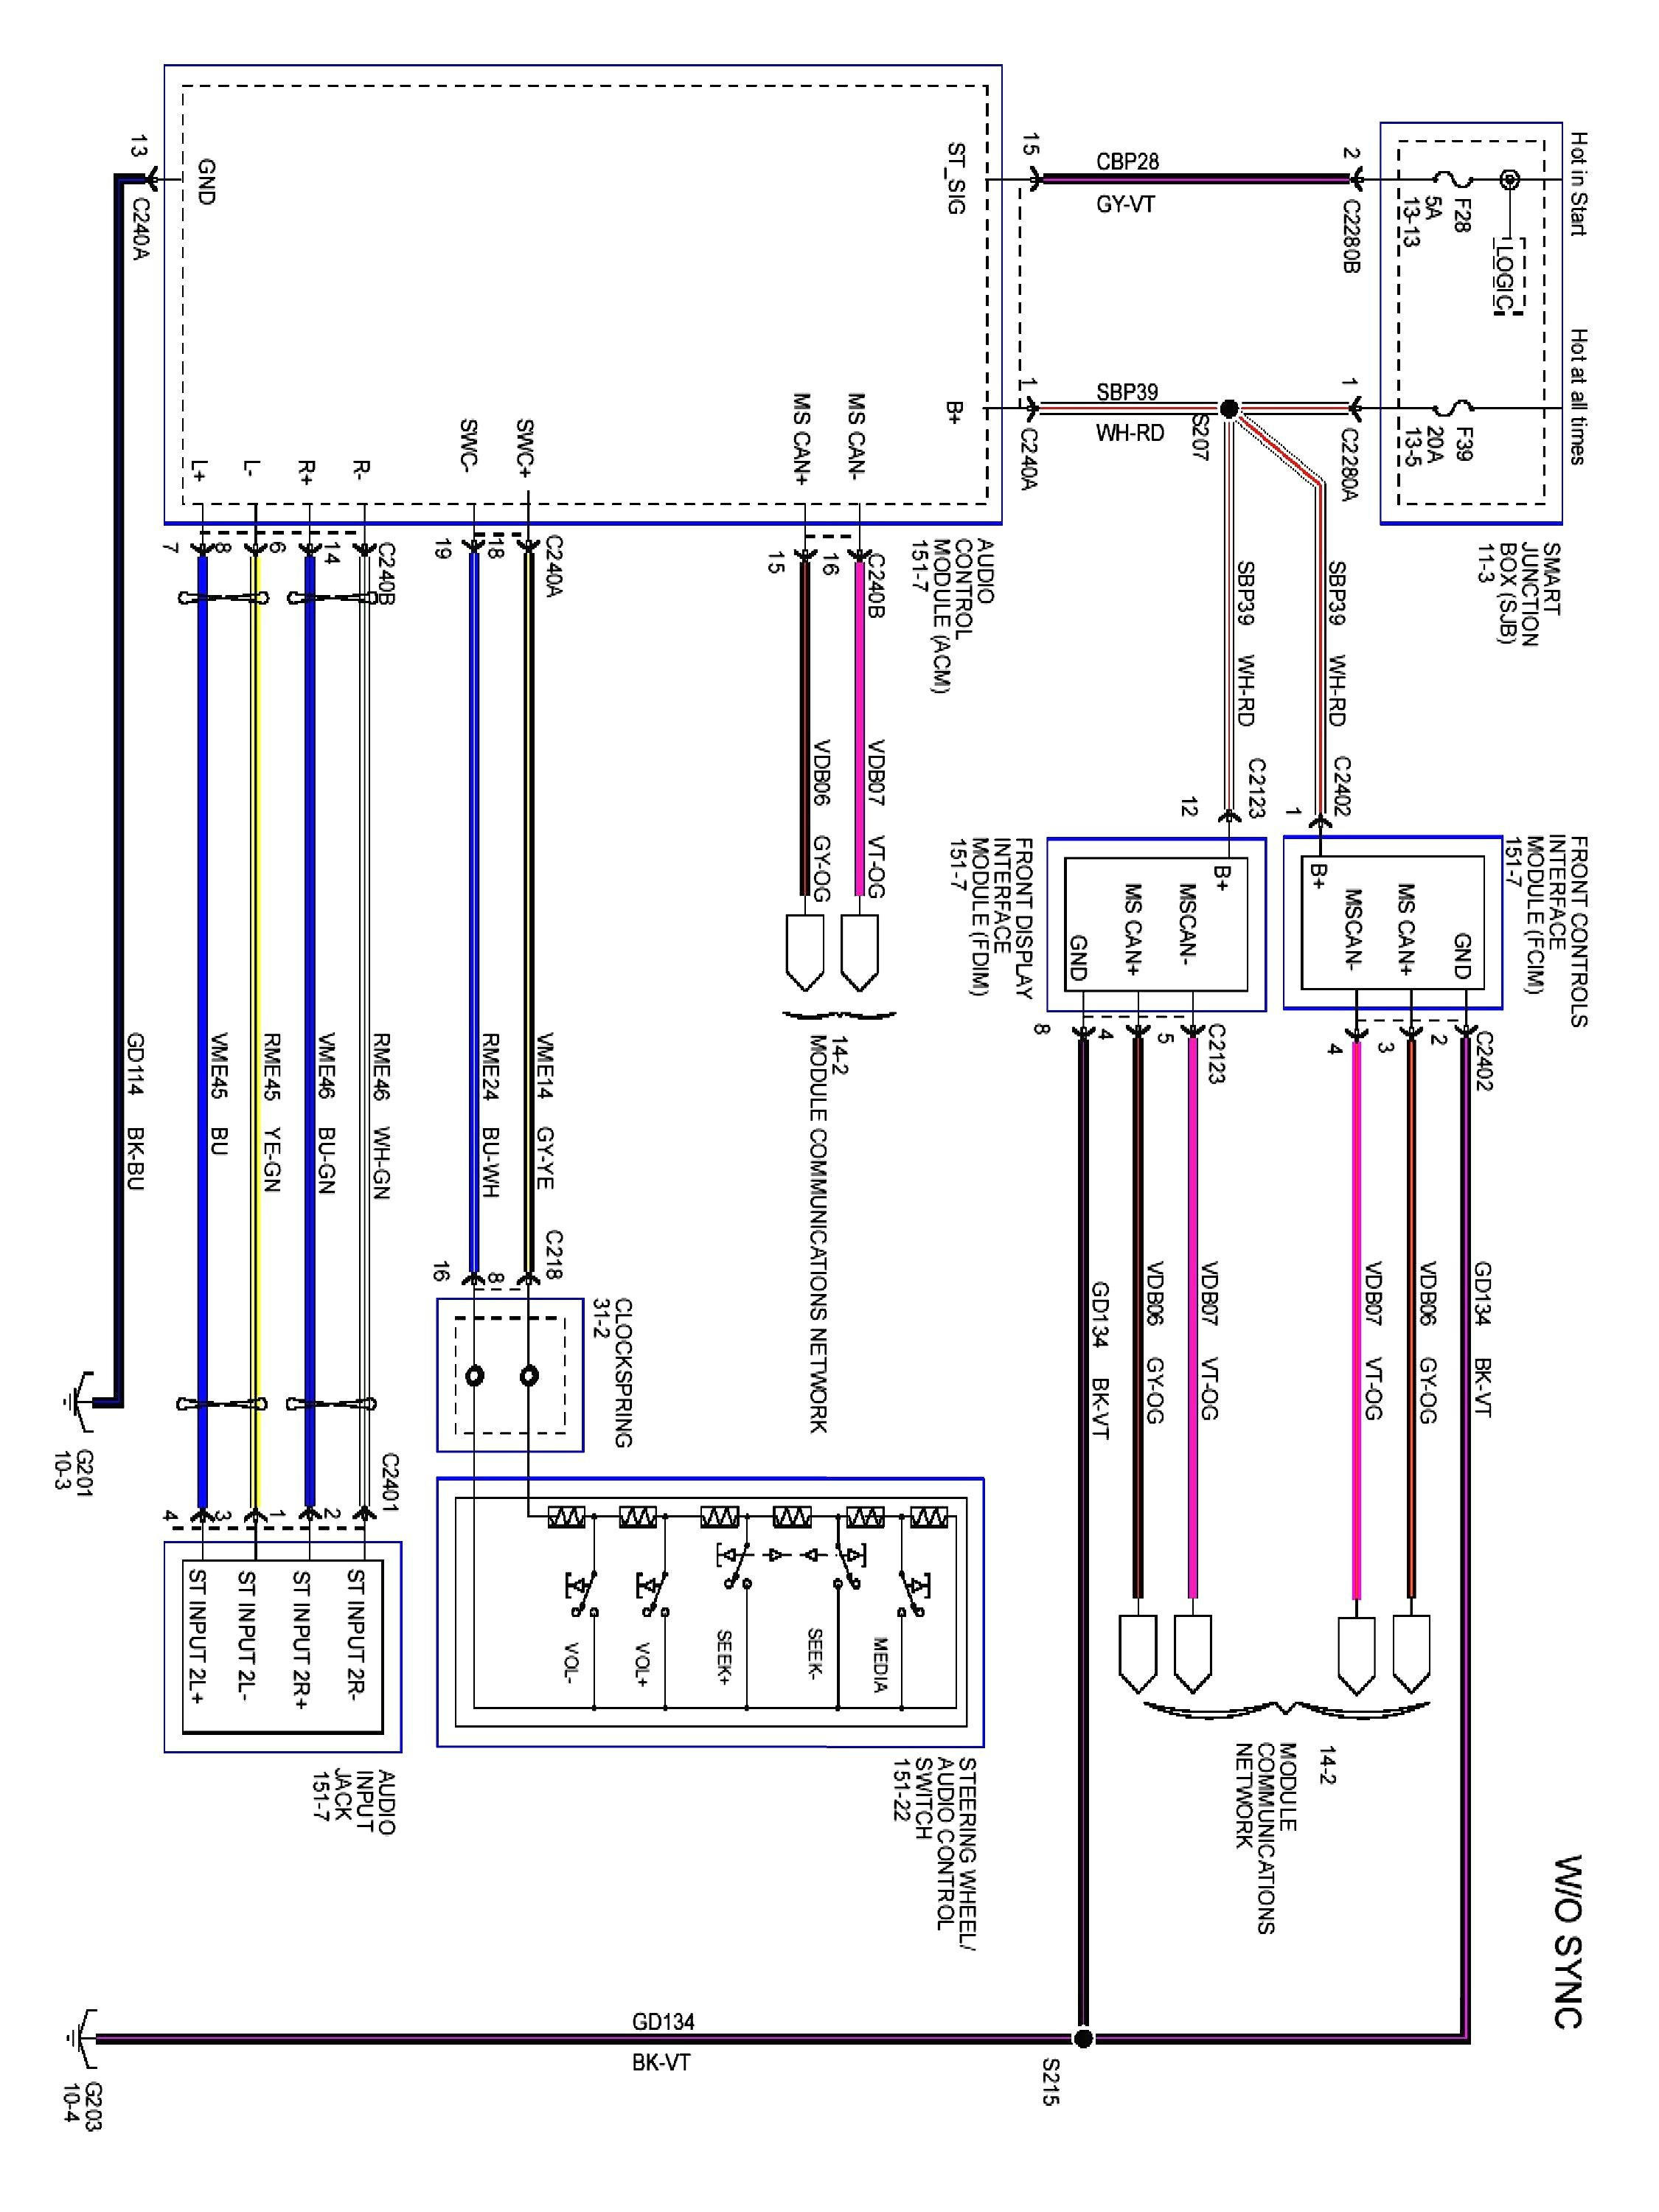 Gallery Of Kbic 120 Wiring Diagram Sample on